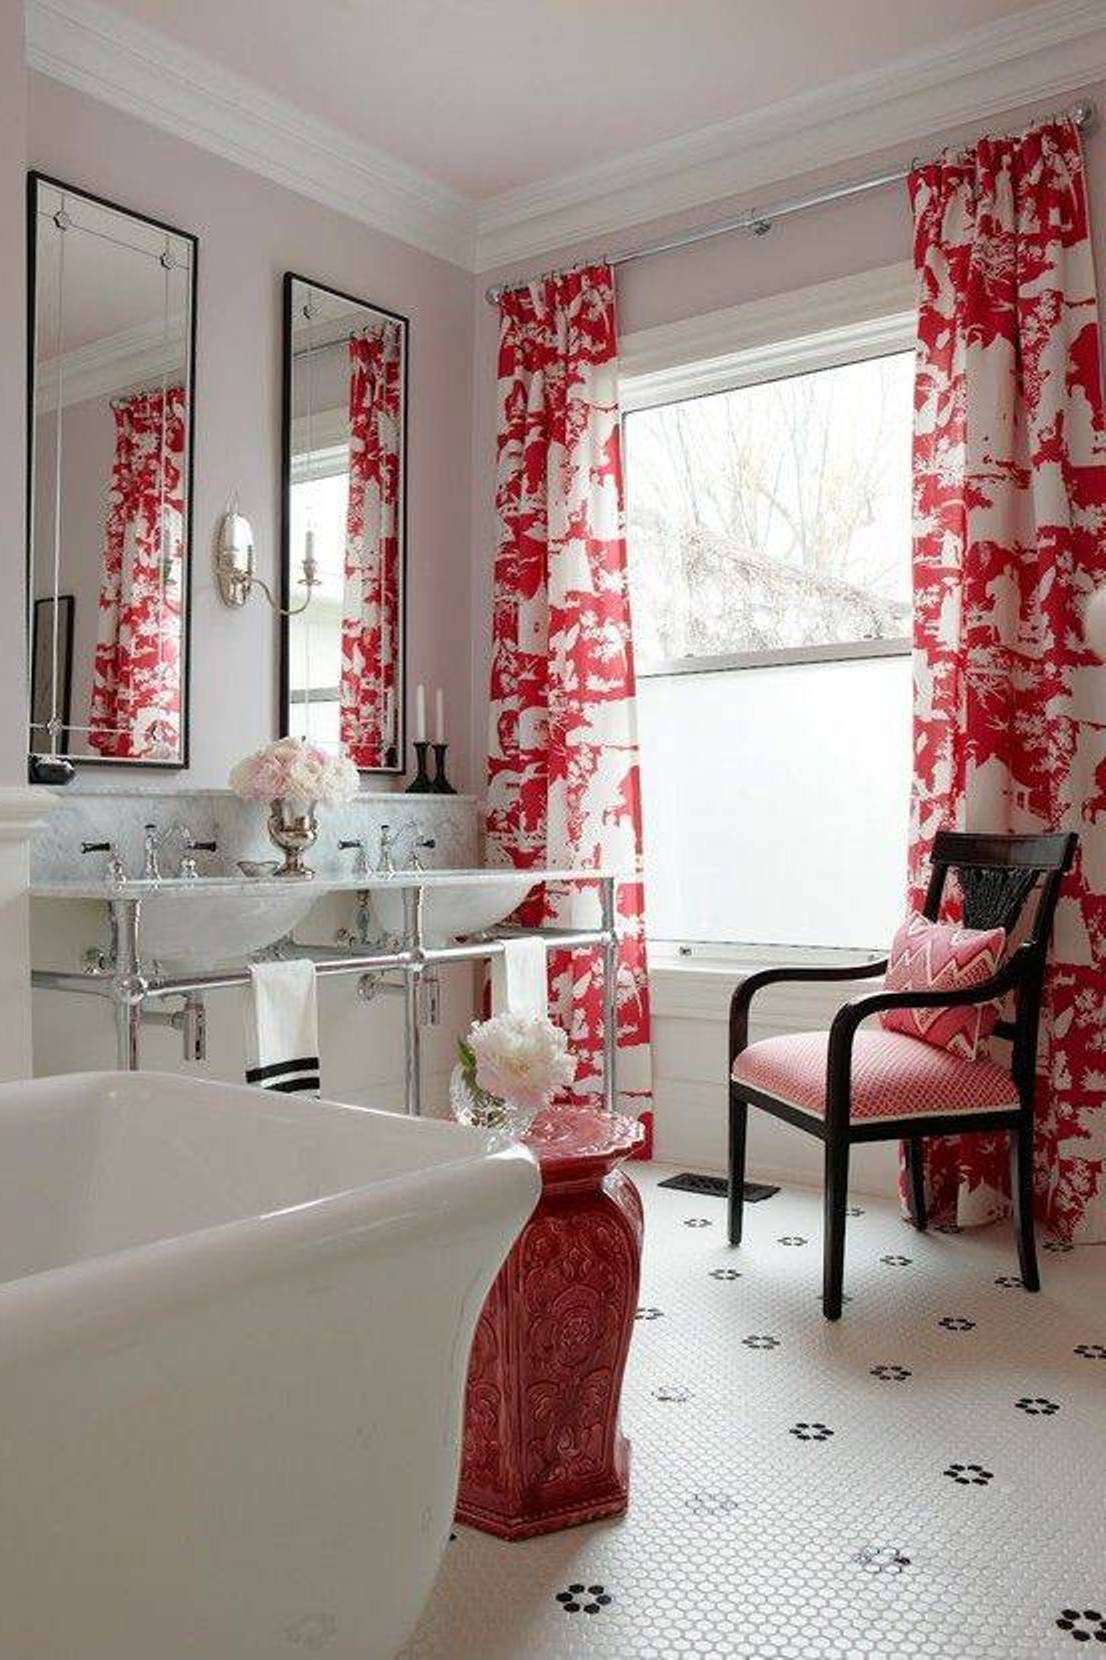 bathroom window curtains - Red Bathroom 2015